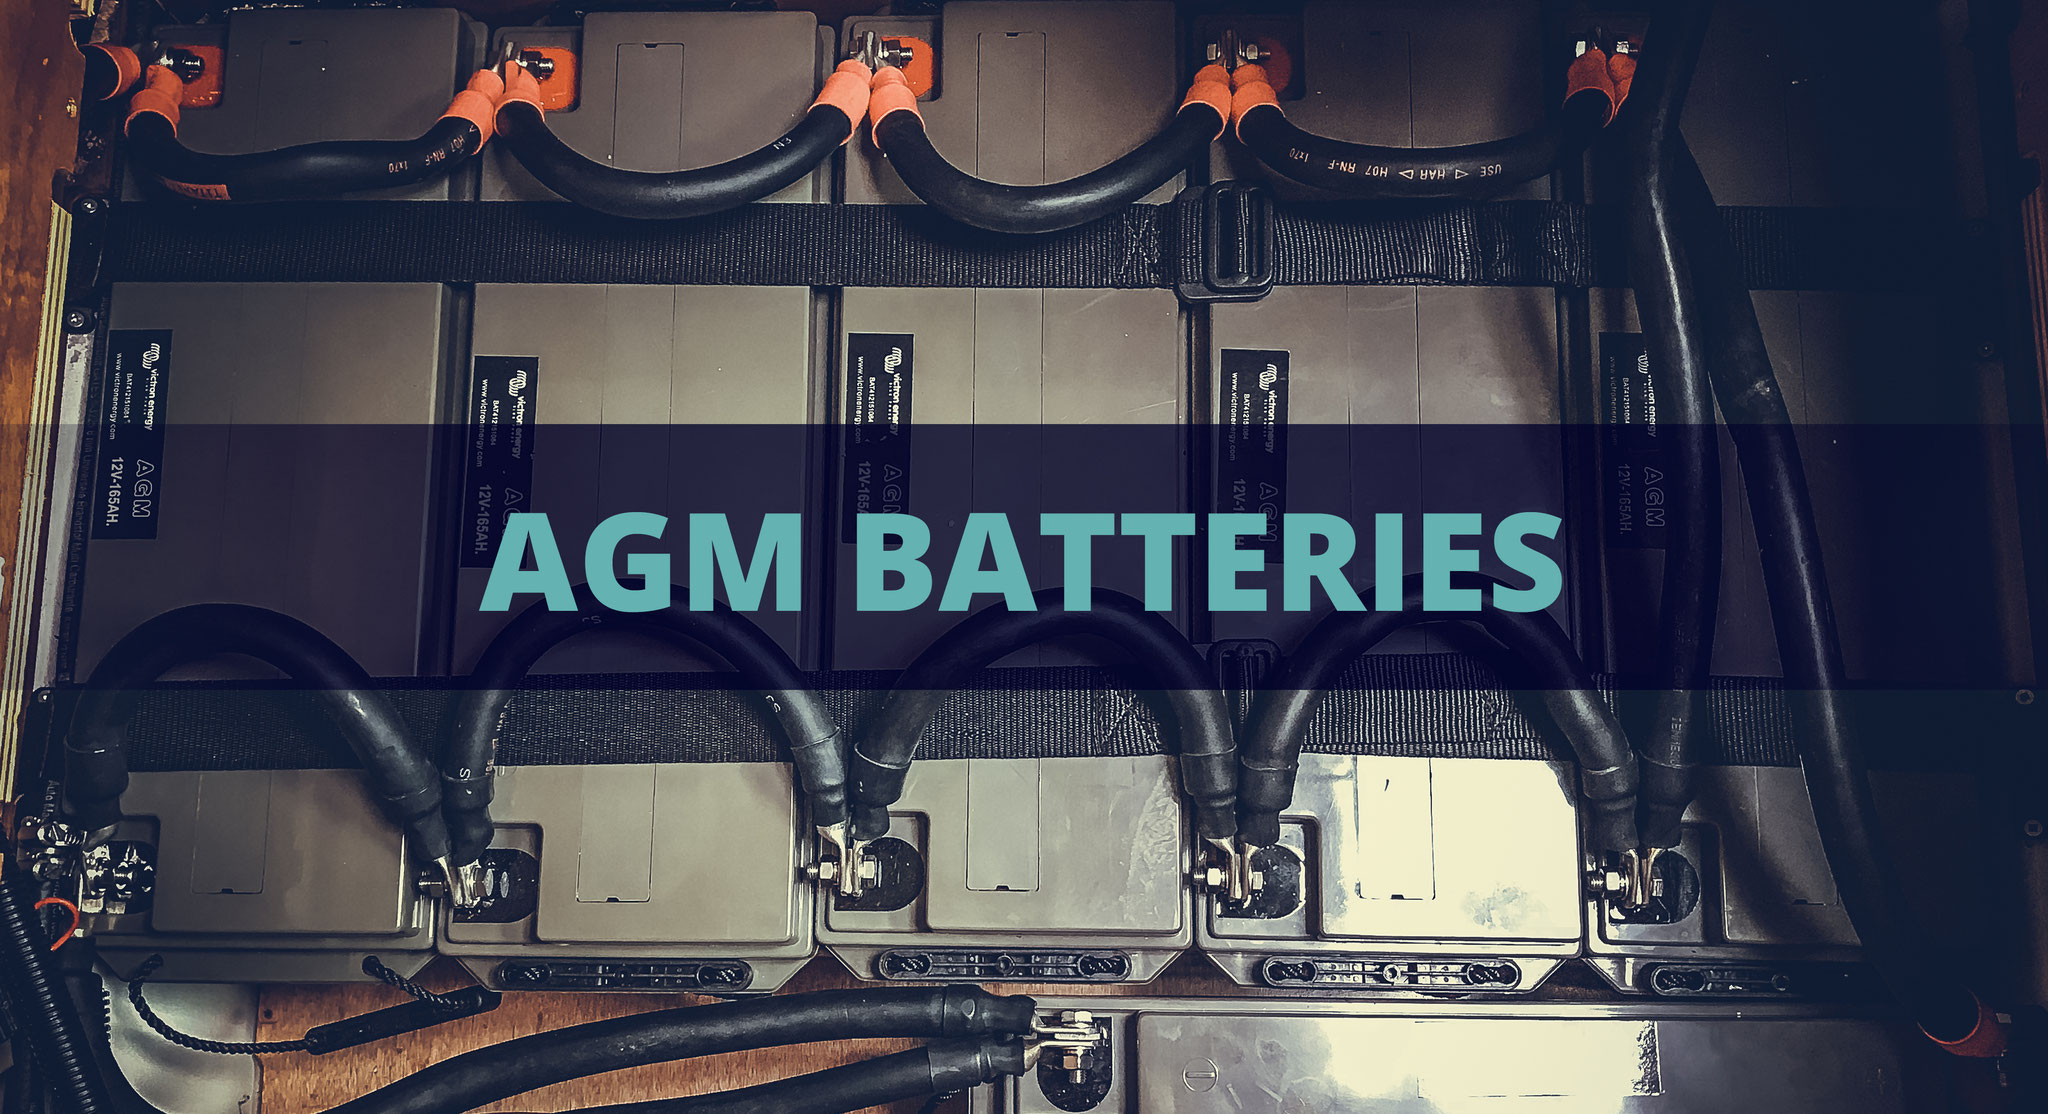 If lithium is not an option, AGM is the next best reliable solution. We offer competitive prices for Premium AGM batteries. We create the best charging solutions to protect battery investment.